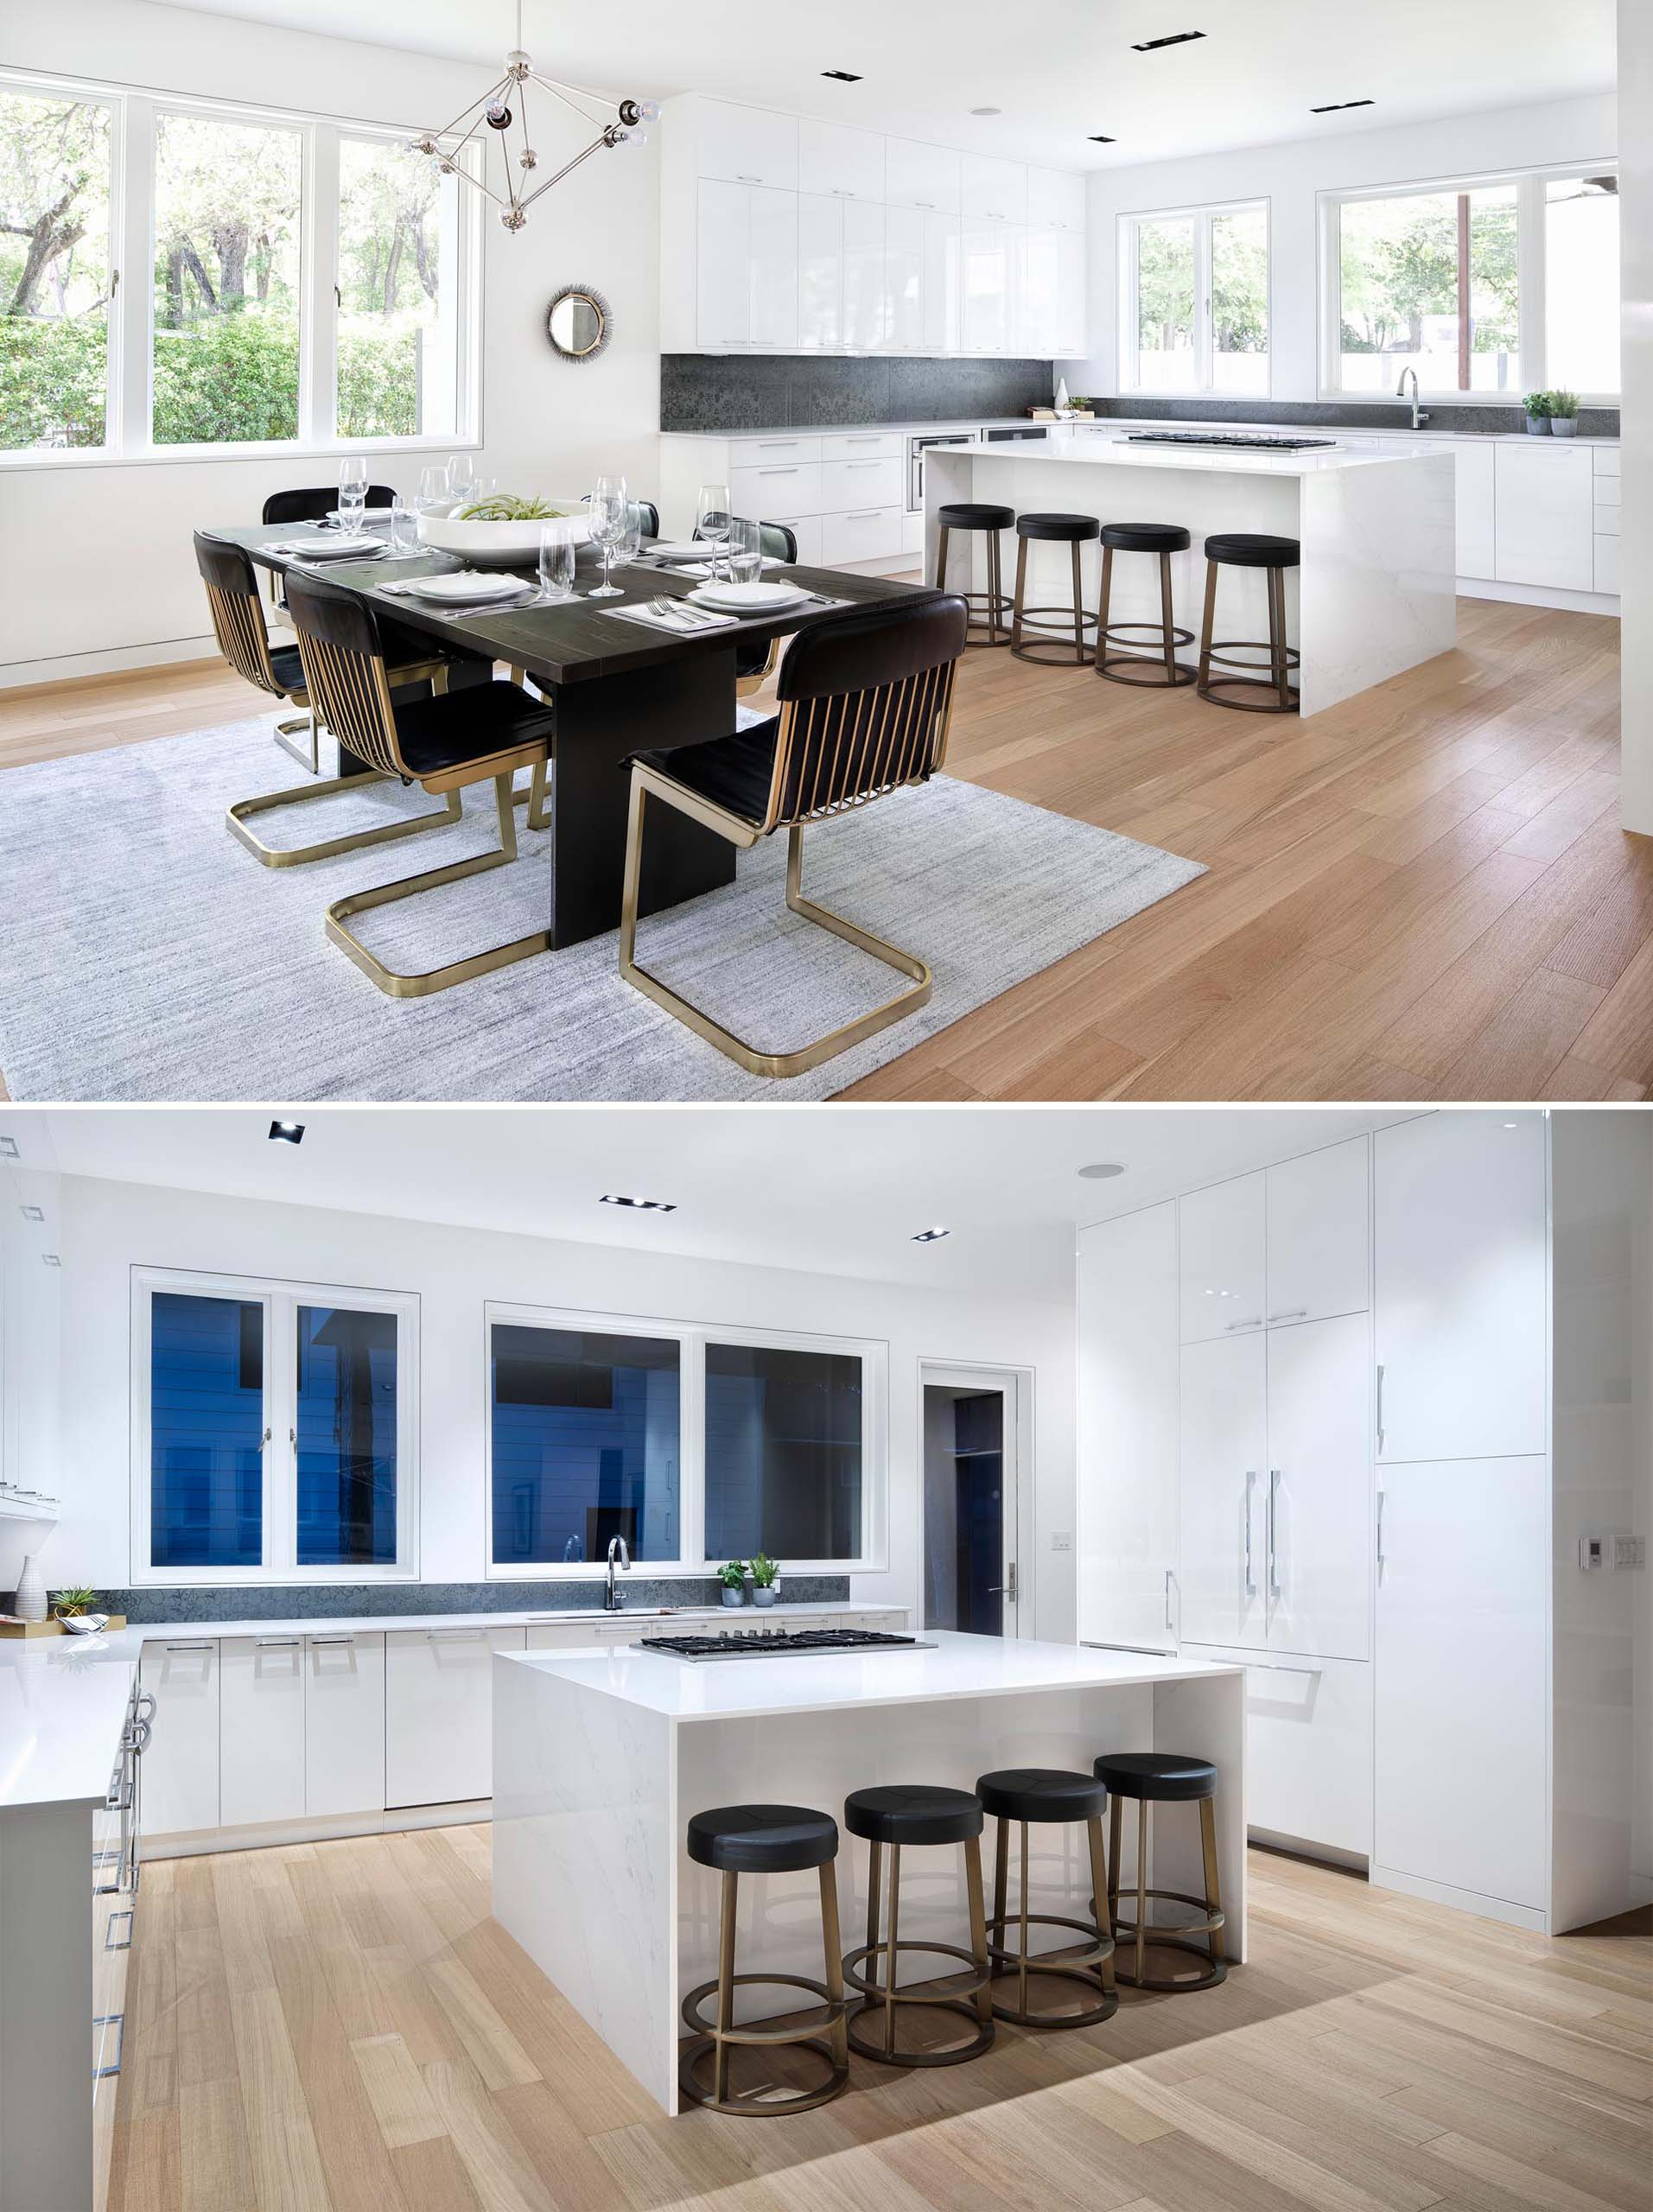 The dining area in this modern home is defined due to the placement of the rug on the wood floor, while the kitchen has modern white cabinets, a contrasting backsplash, and a central island with room for seating.